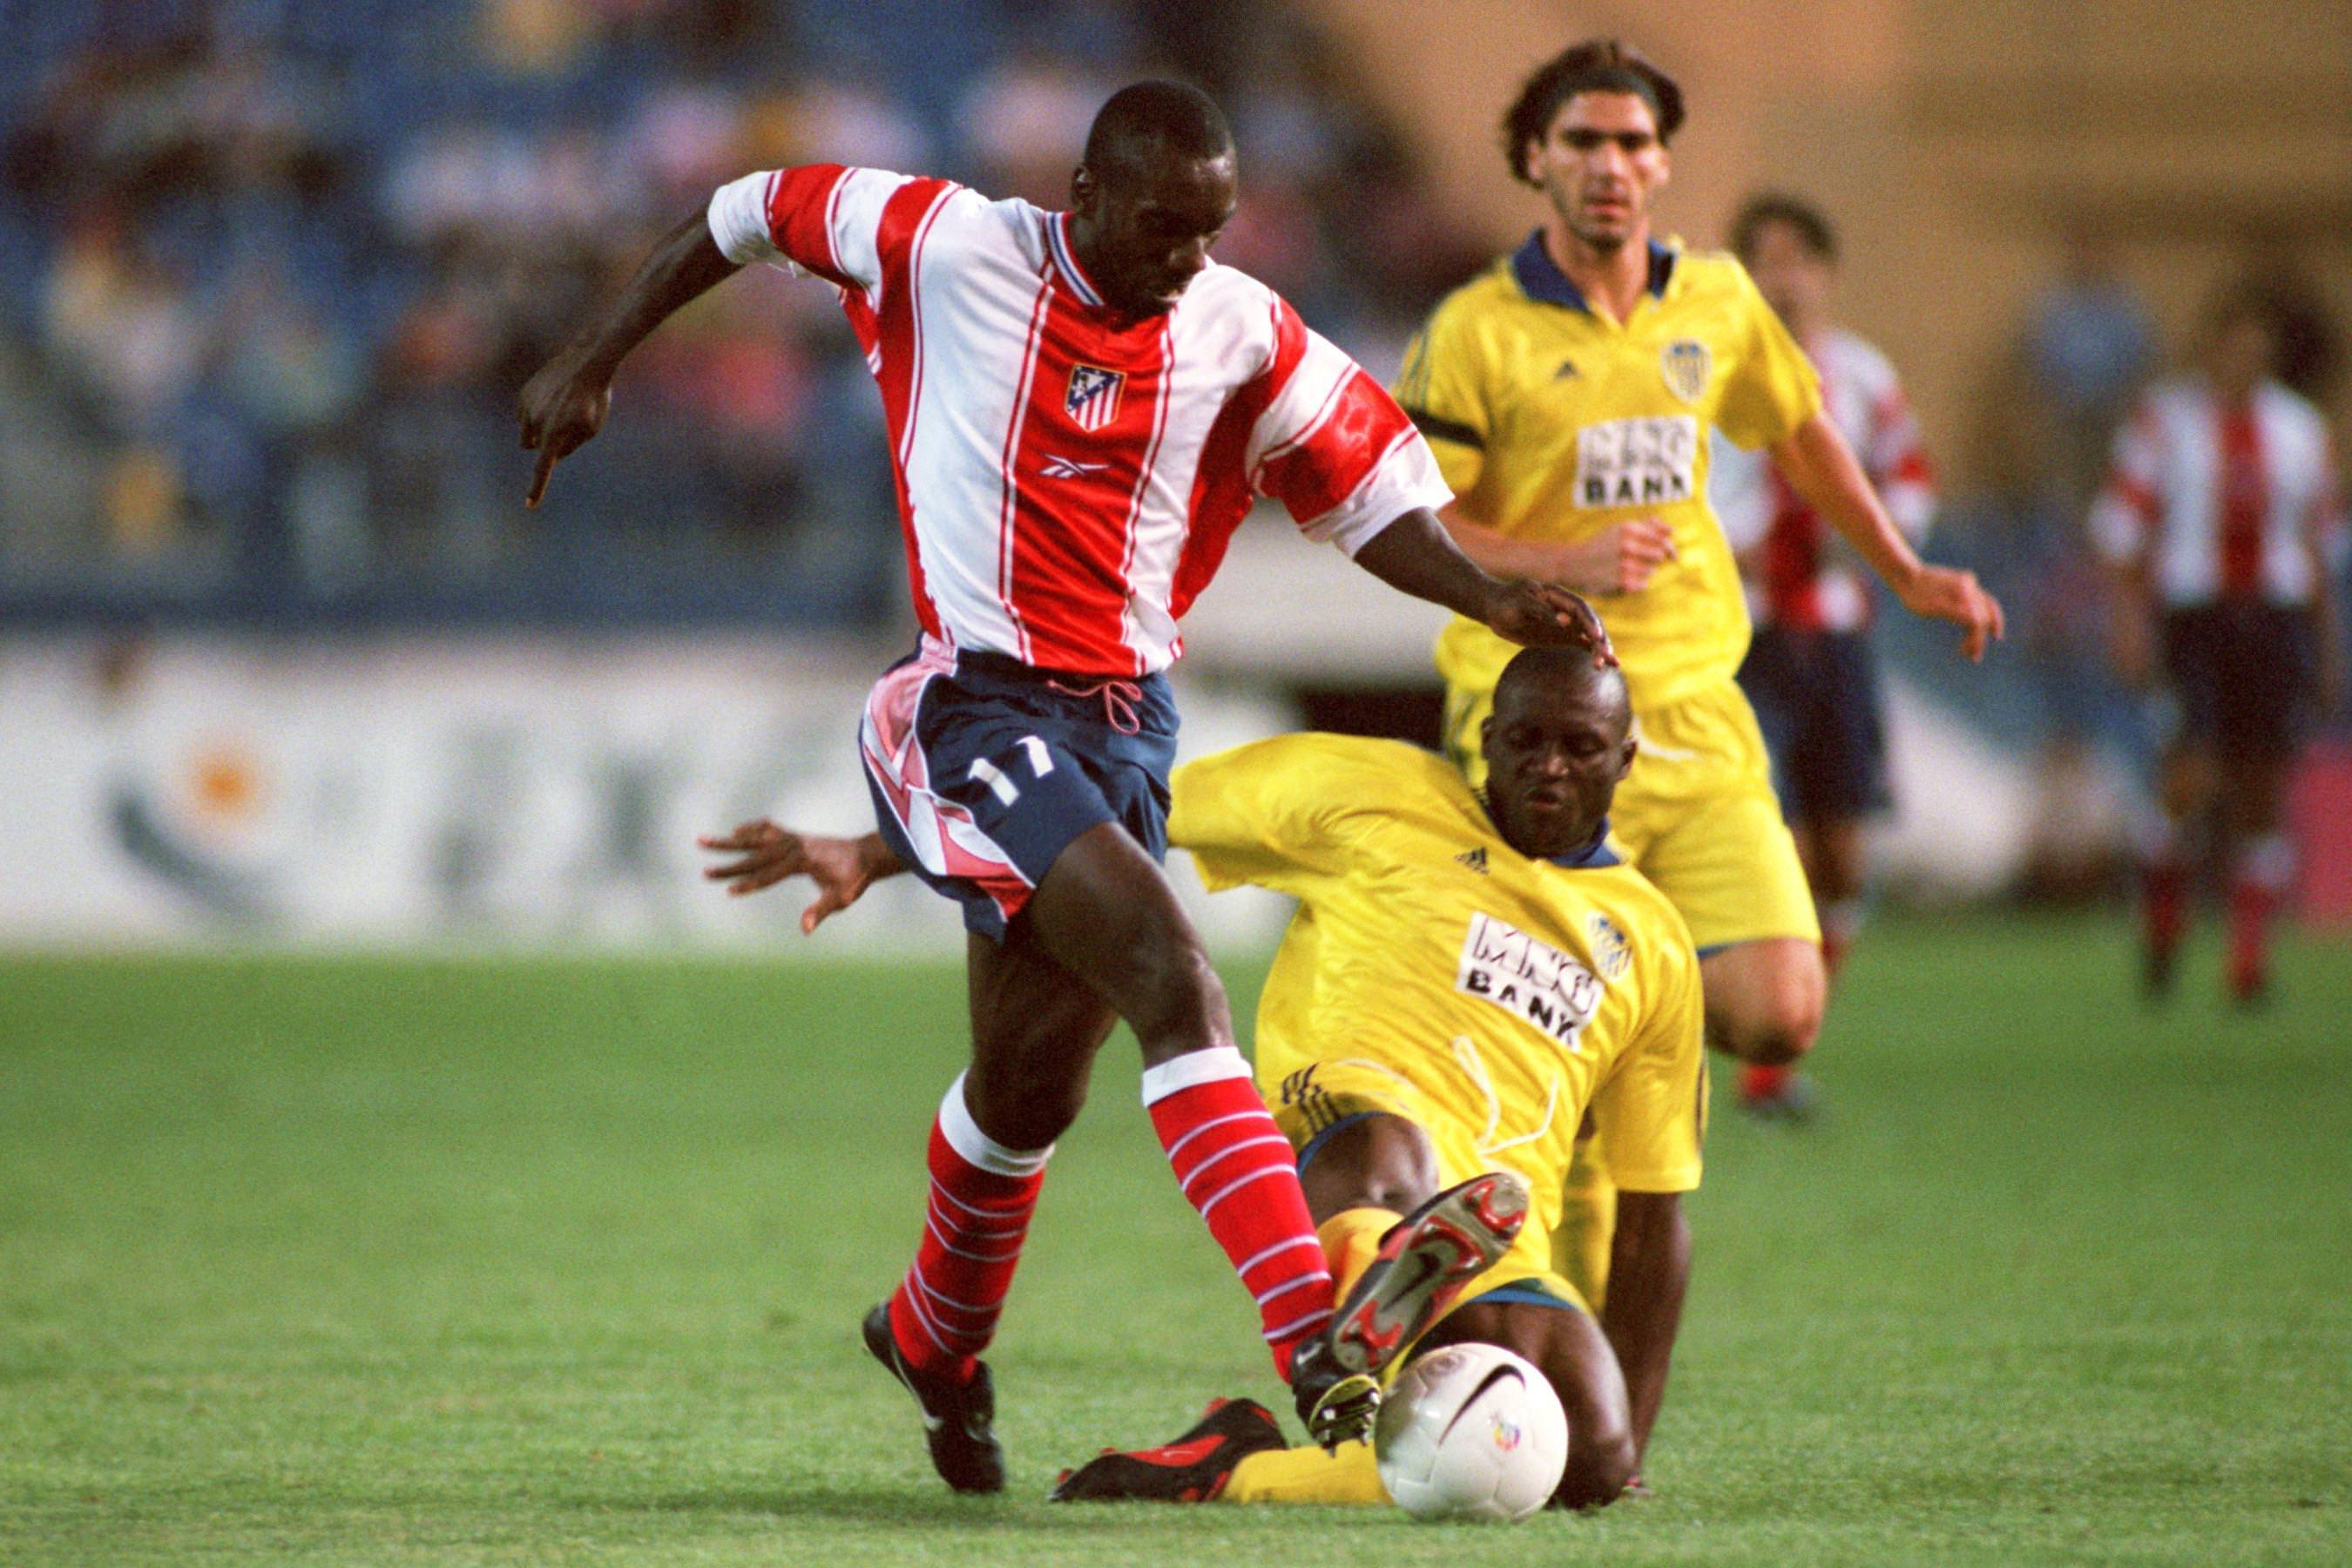 Jimmy_FloydHasselbaink_evades_a_tackle_playing_in_la_liga_football4football